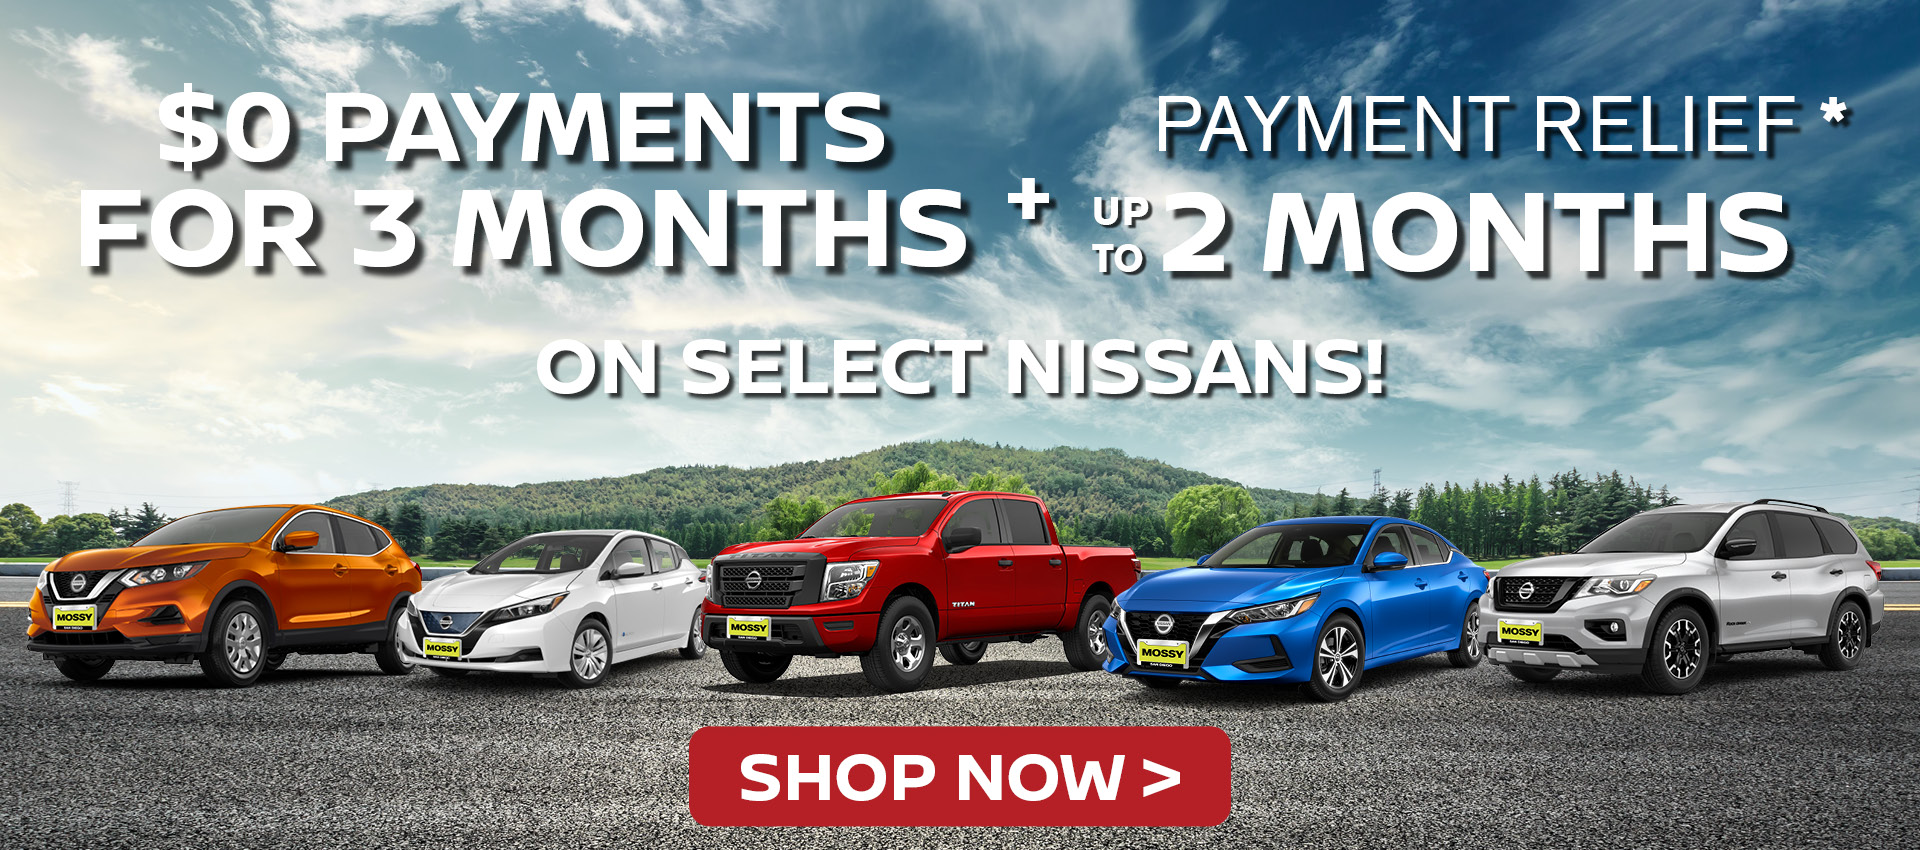 Mossy Nissan - Deferred Payments - HP